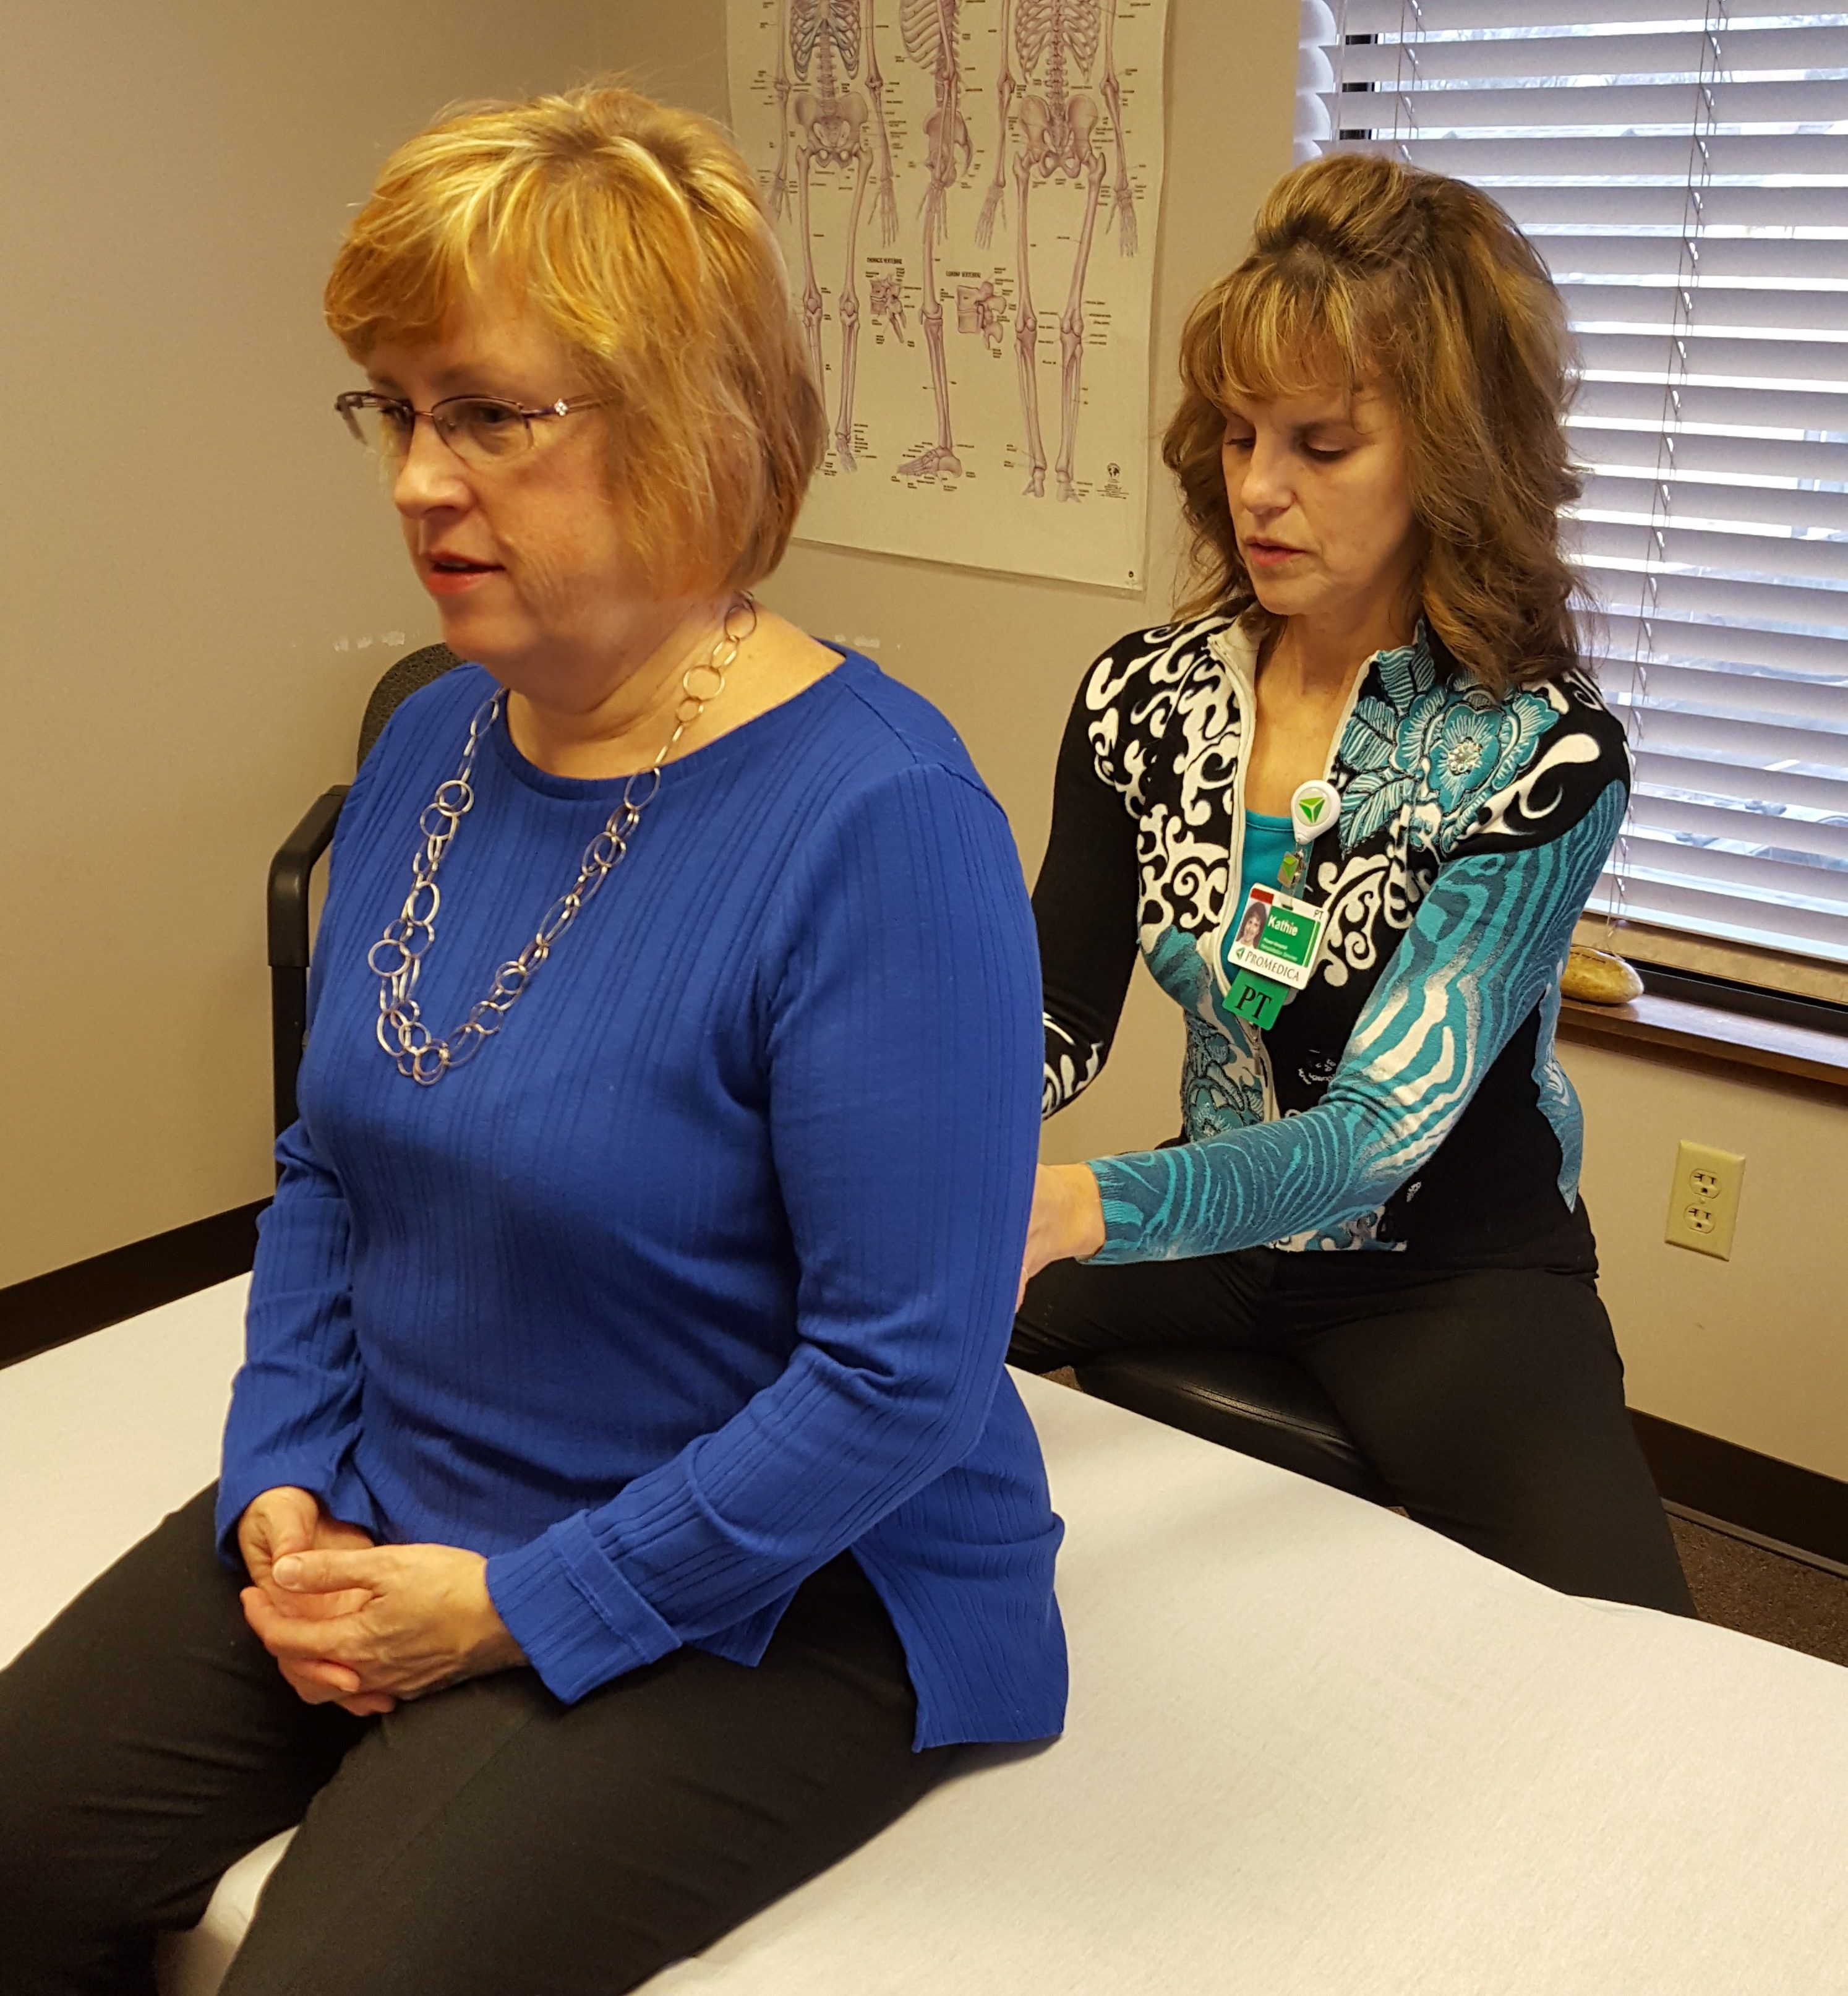 Trigger point dry needling may offer muscle tension relief